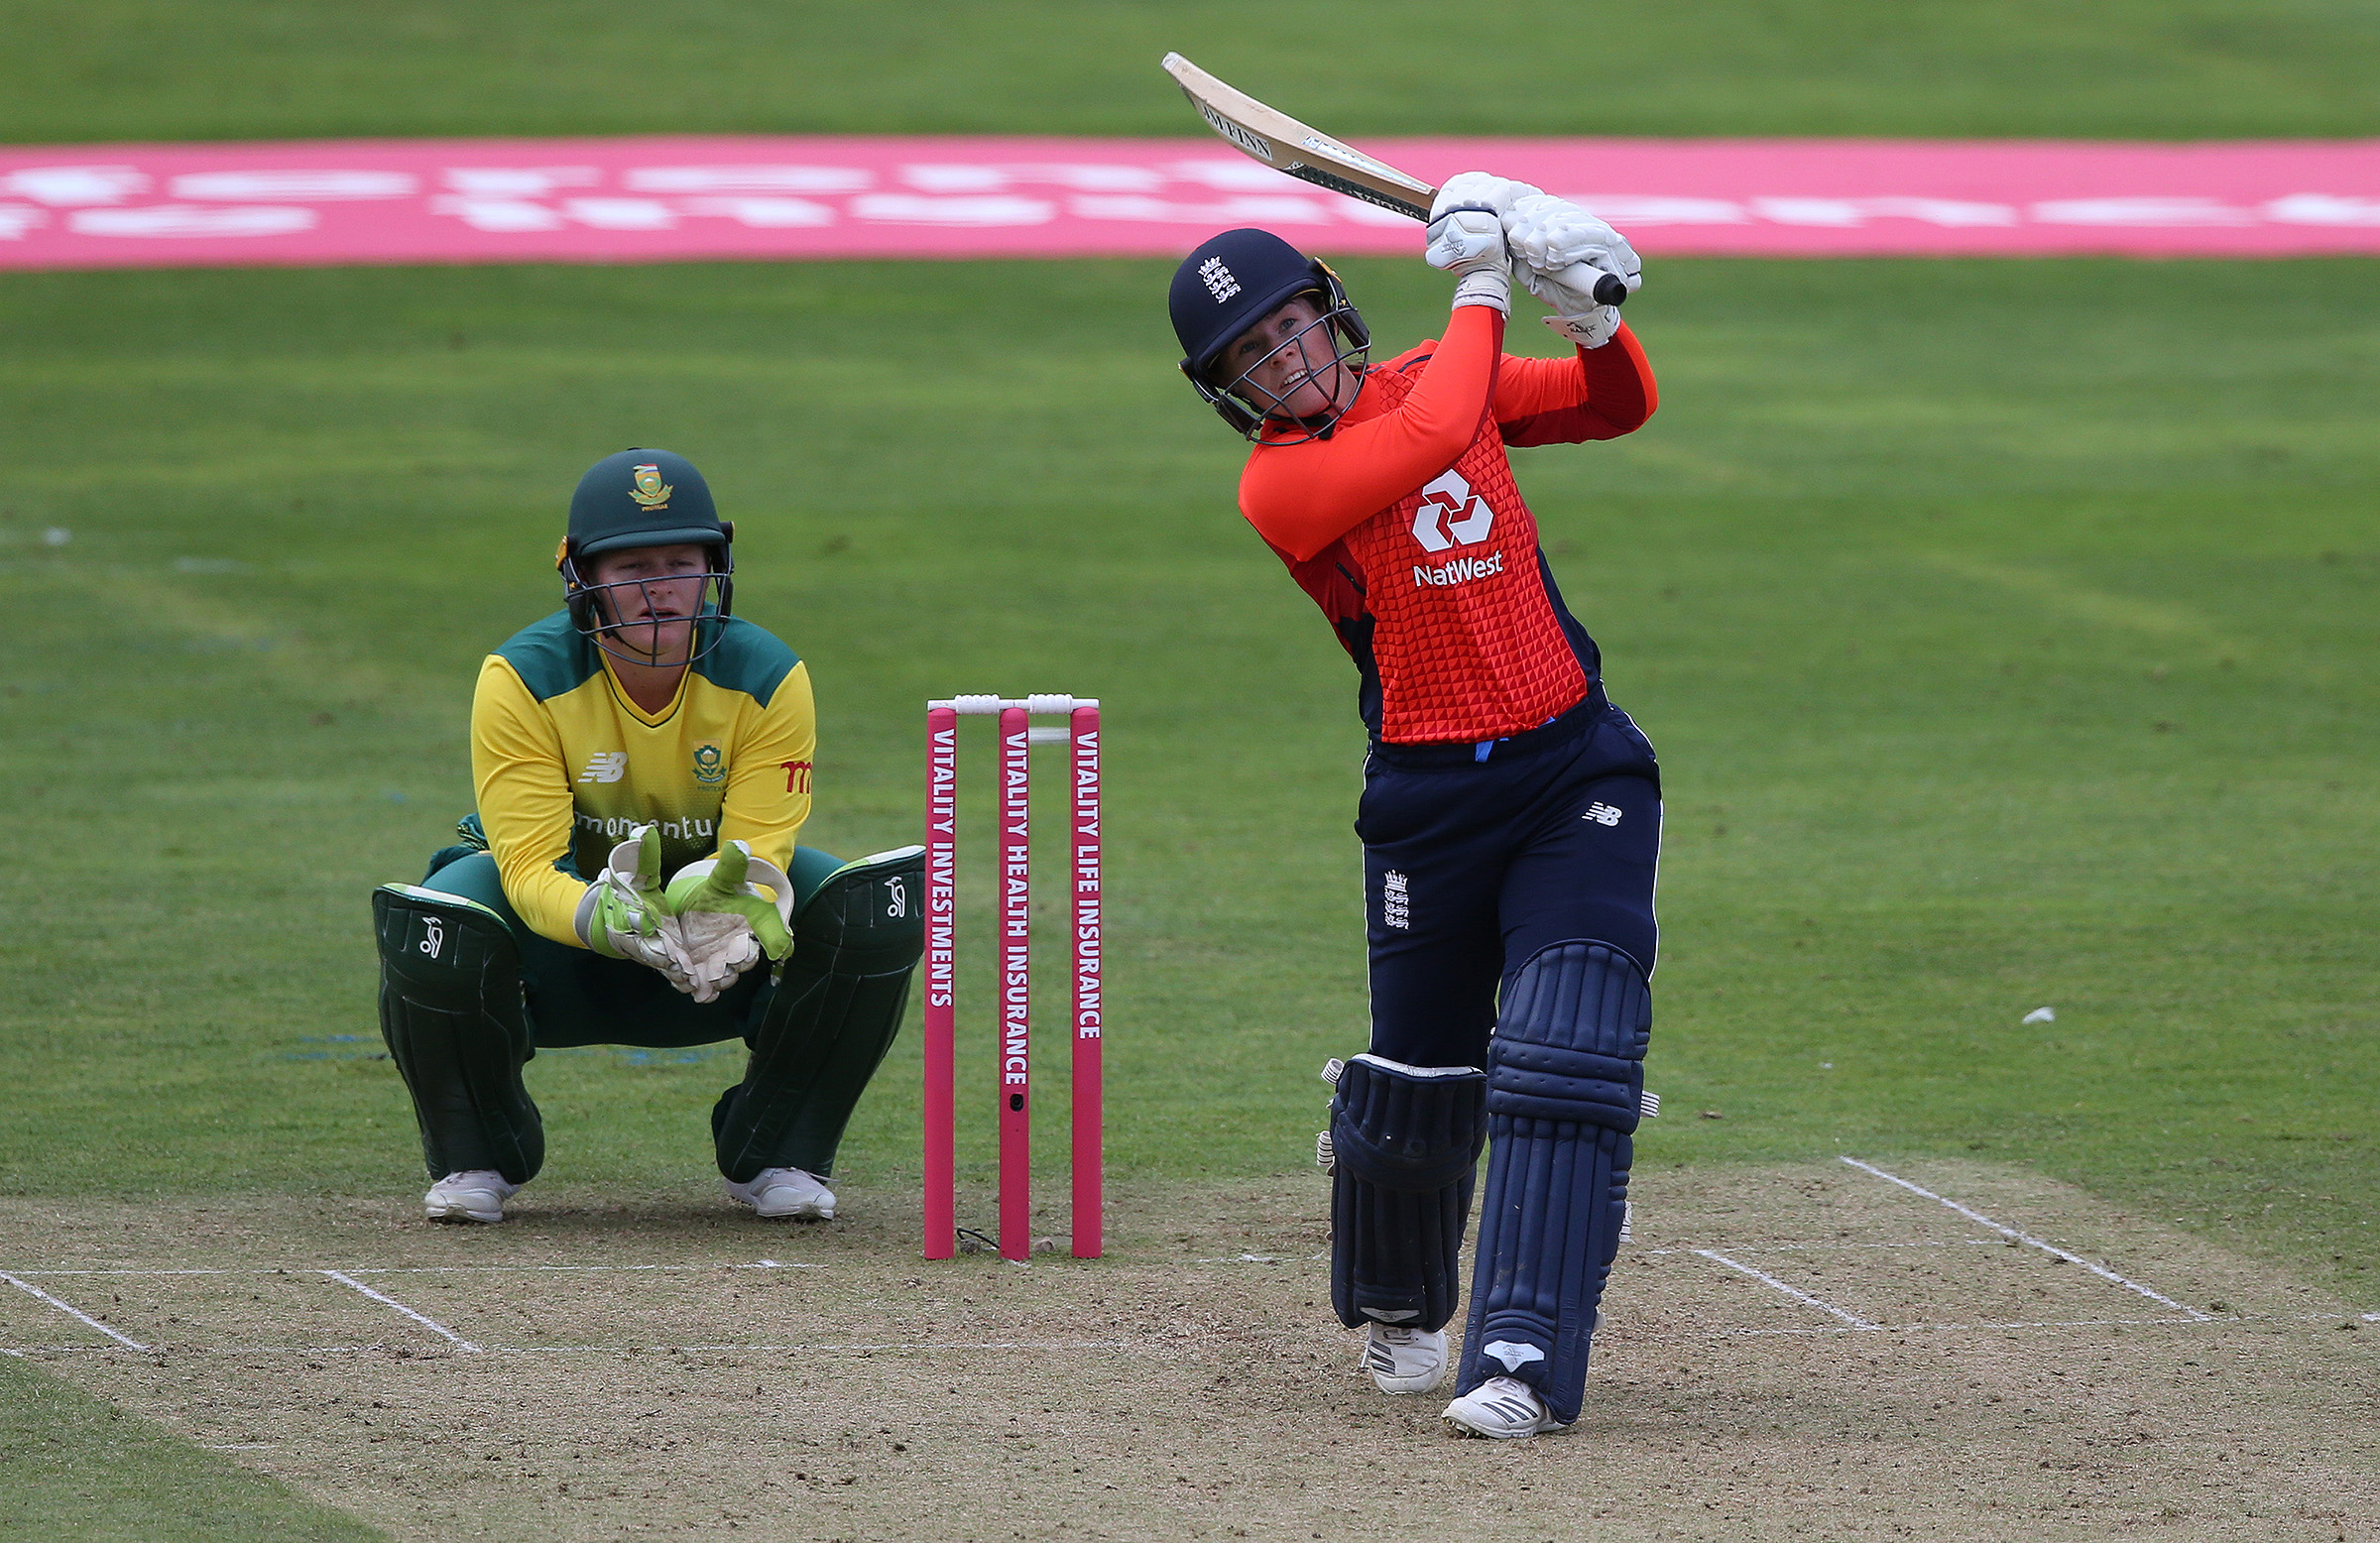 Beaumont goes long against the Proteas // Getty